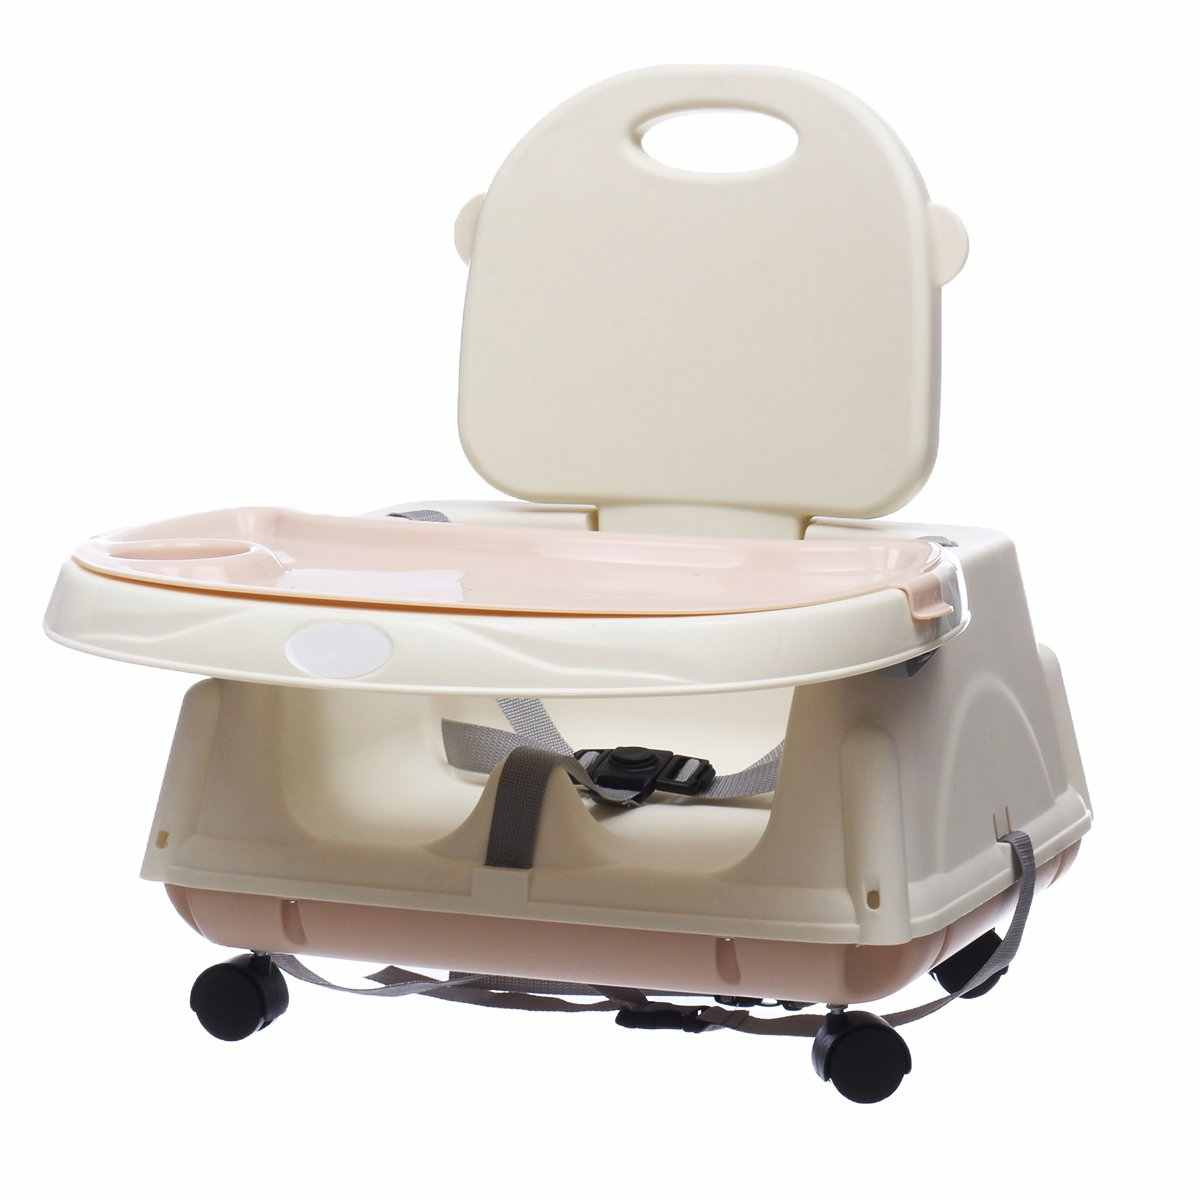 3 in 1 Adjustable High Chair Feeding Chair Baby Chair Booster Seat Children  Folding Chairs Kids Highchair Seat Baby Eating Seats